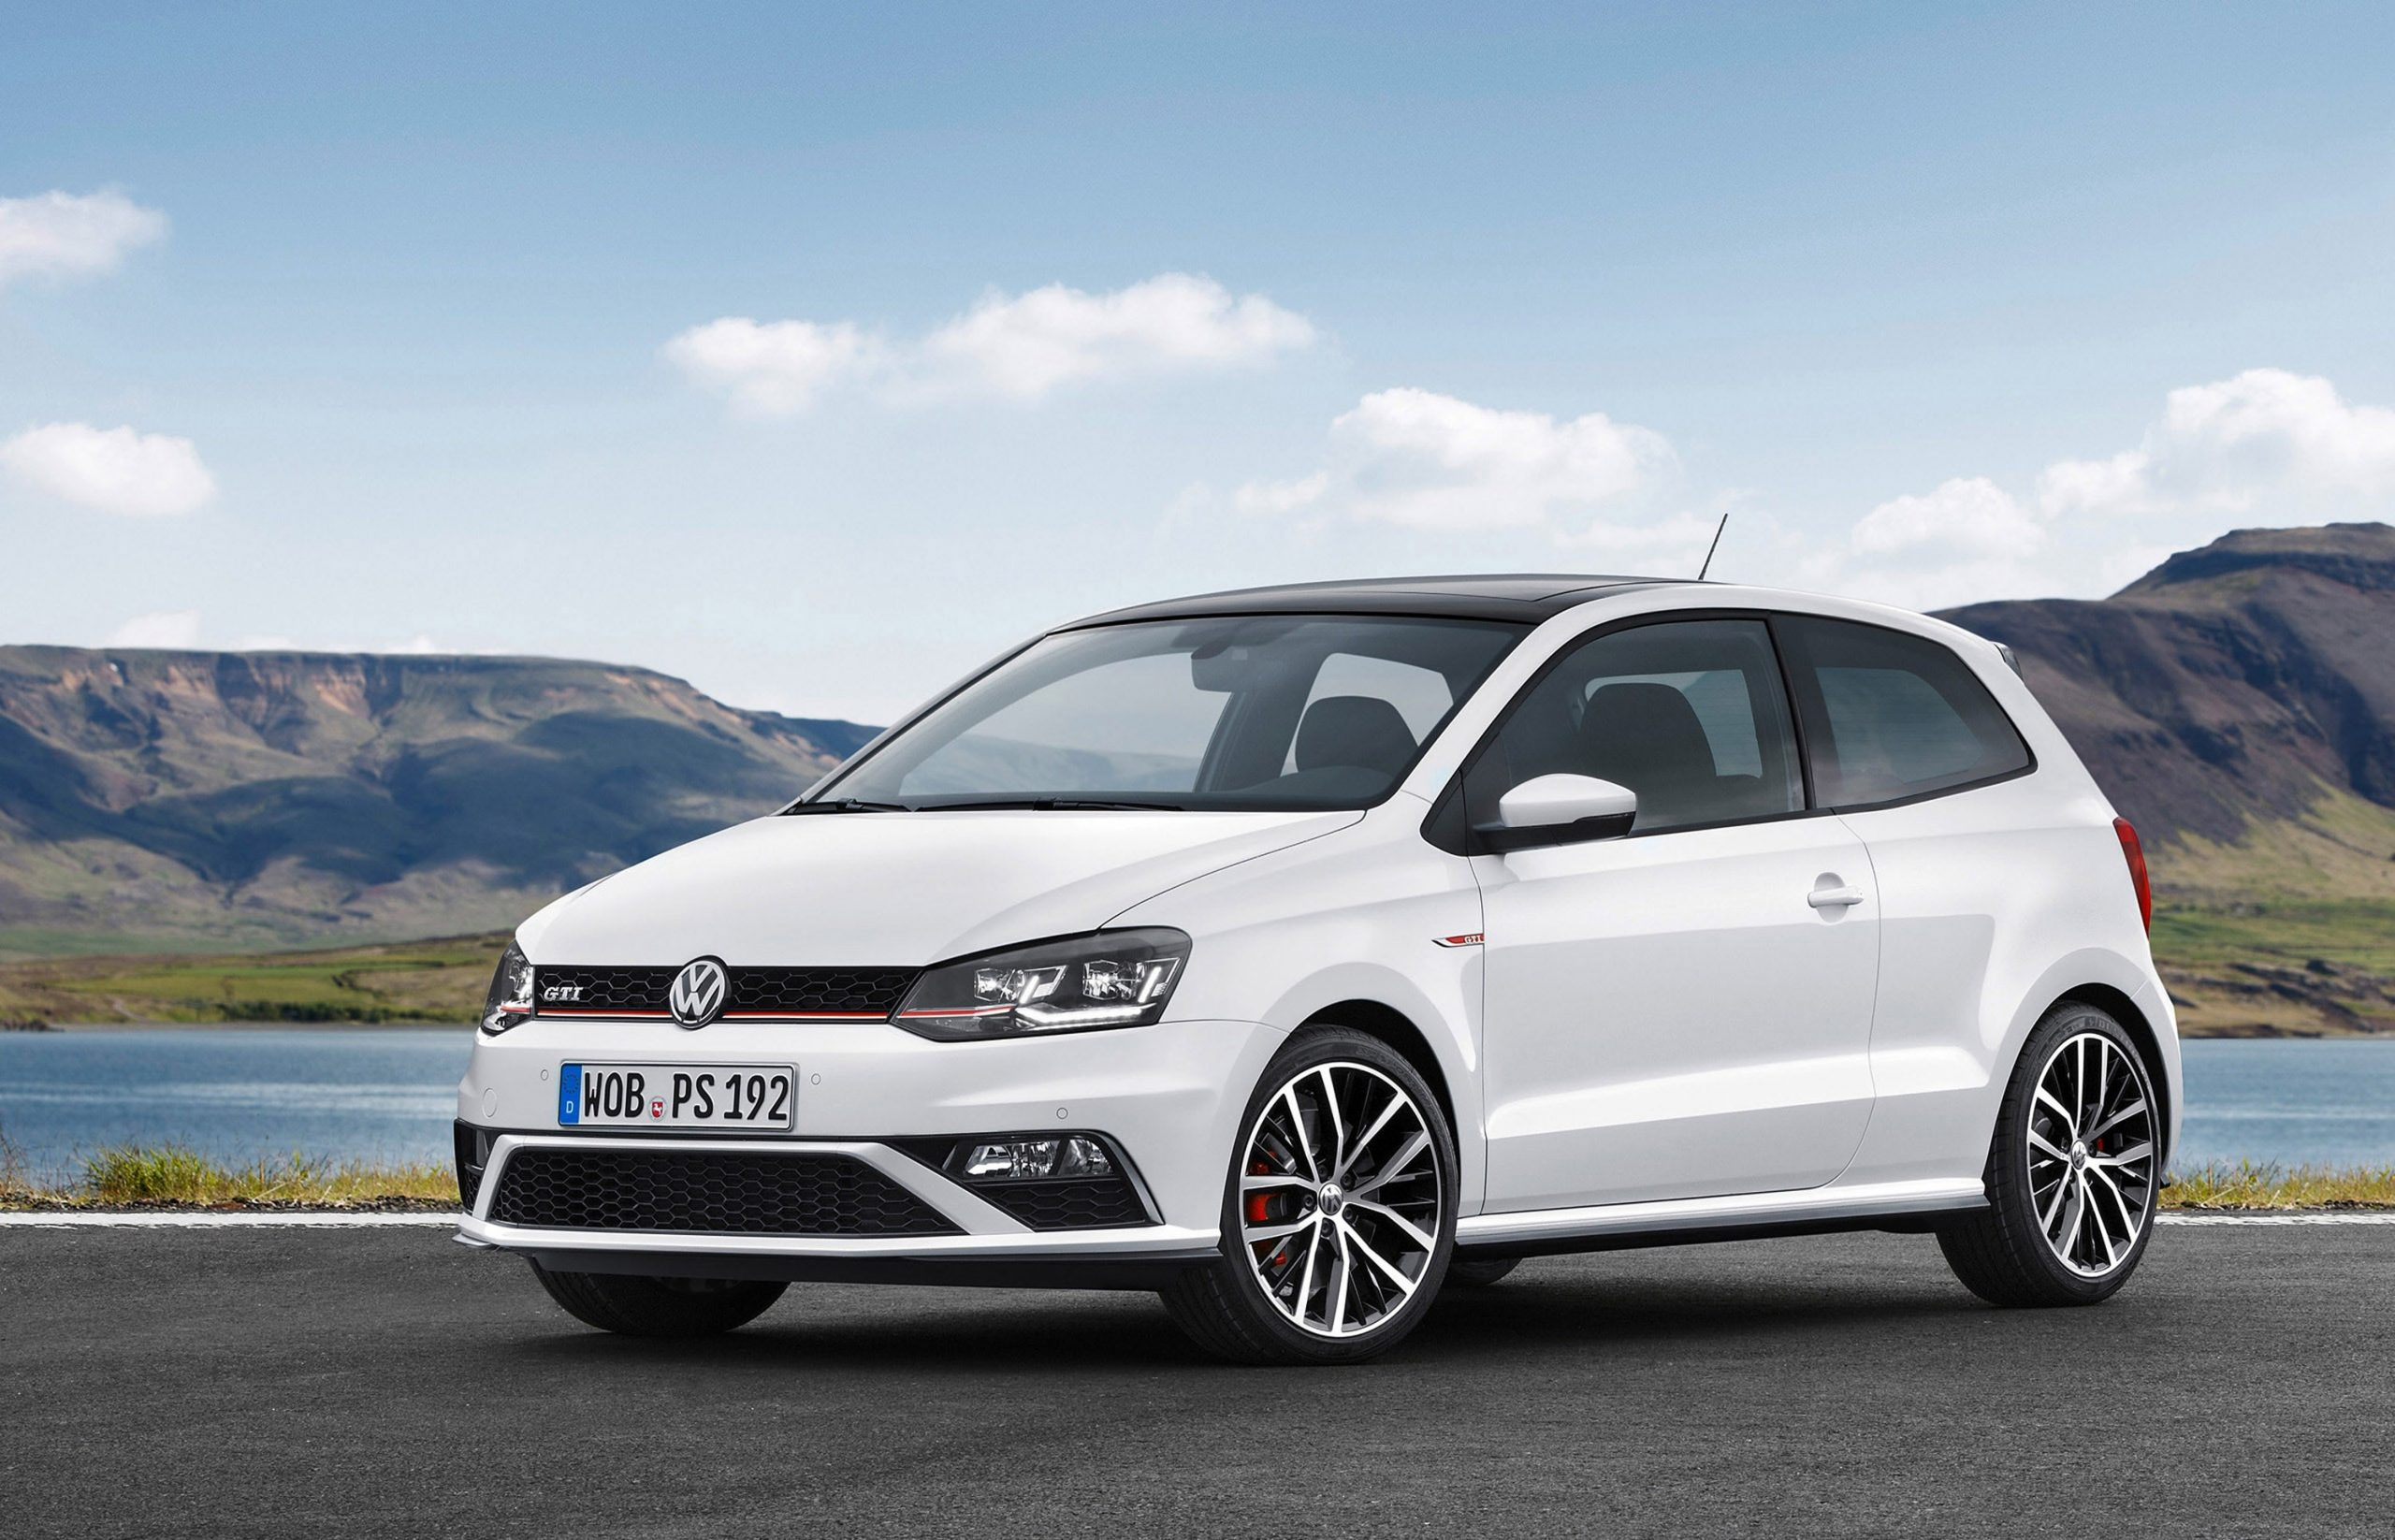 Volkswagen Polo Wallpapers for Windows